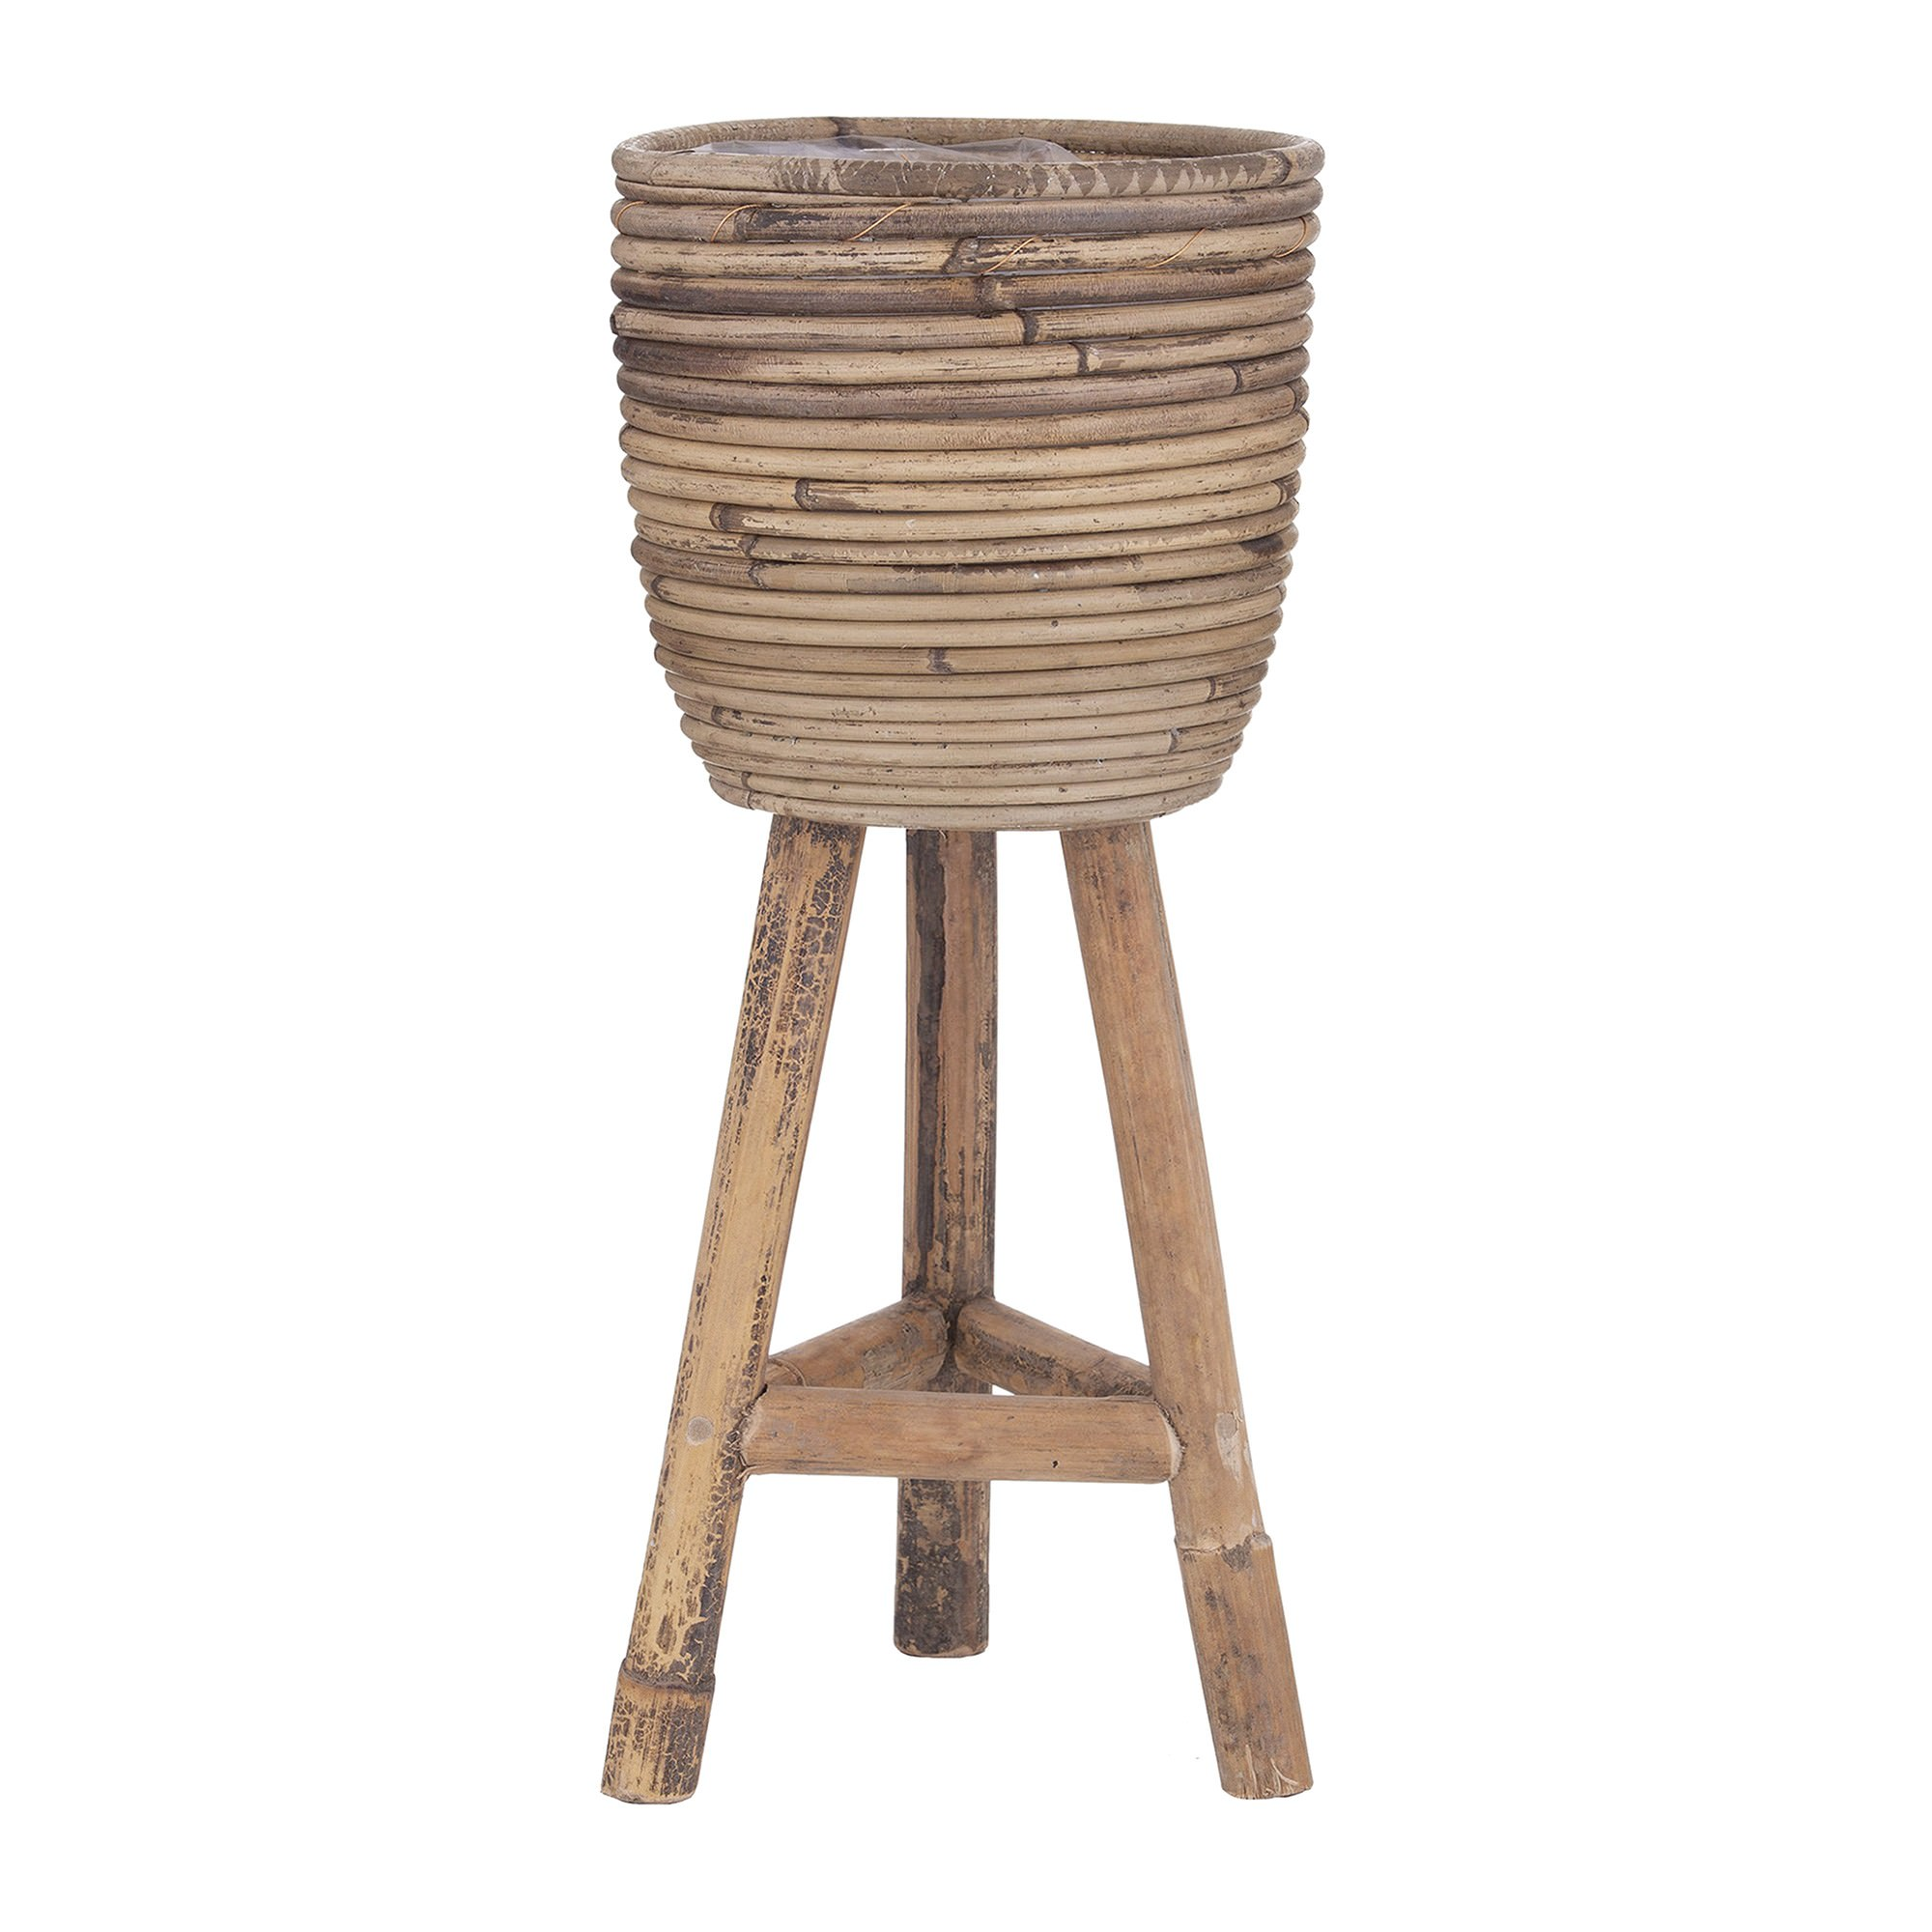 Ryland Bamboo Rattan Planter with Stand, Small